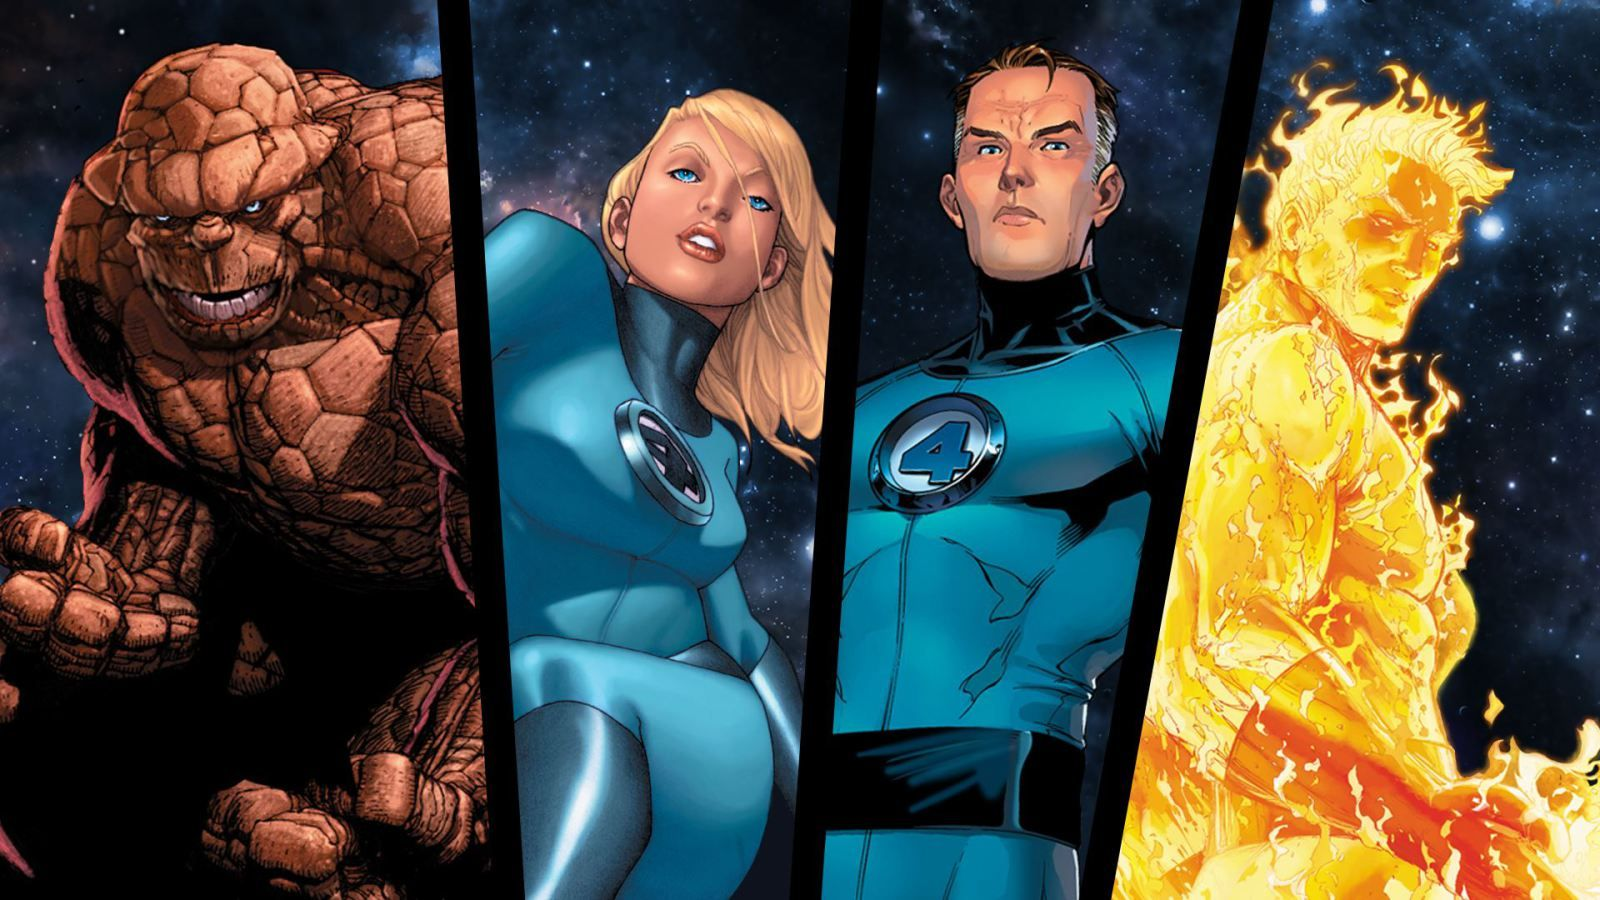 Fantastic Four Hd Free Wallpapers Cartoon For Desktop Fantastic Four Dc Comics Wallpaper Marvel